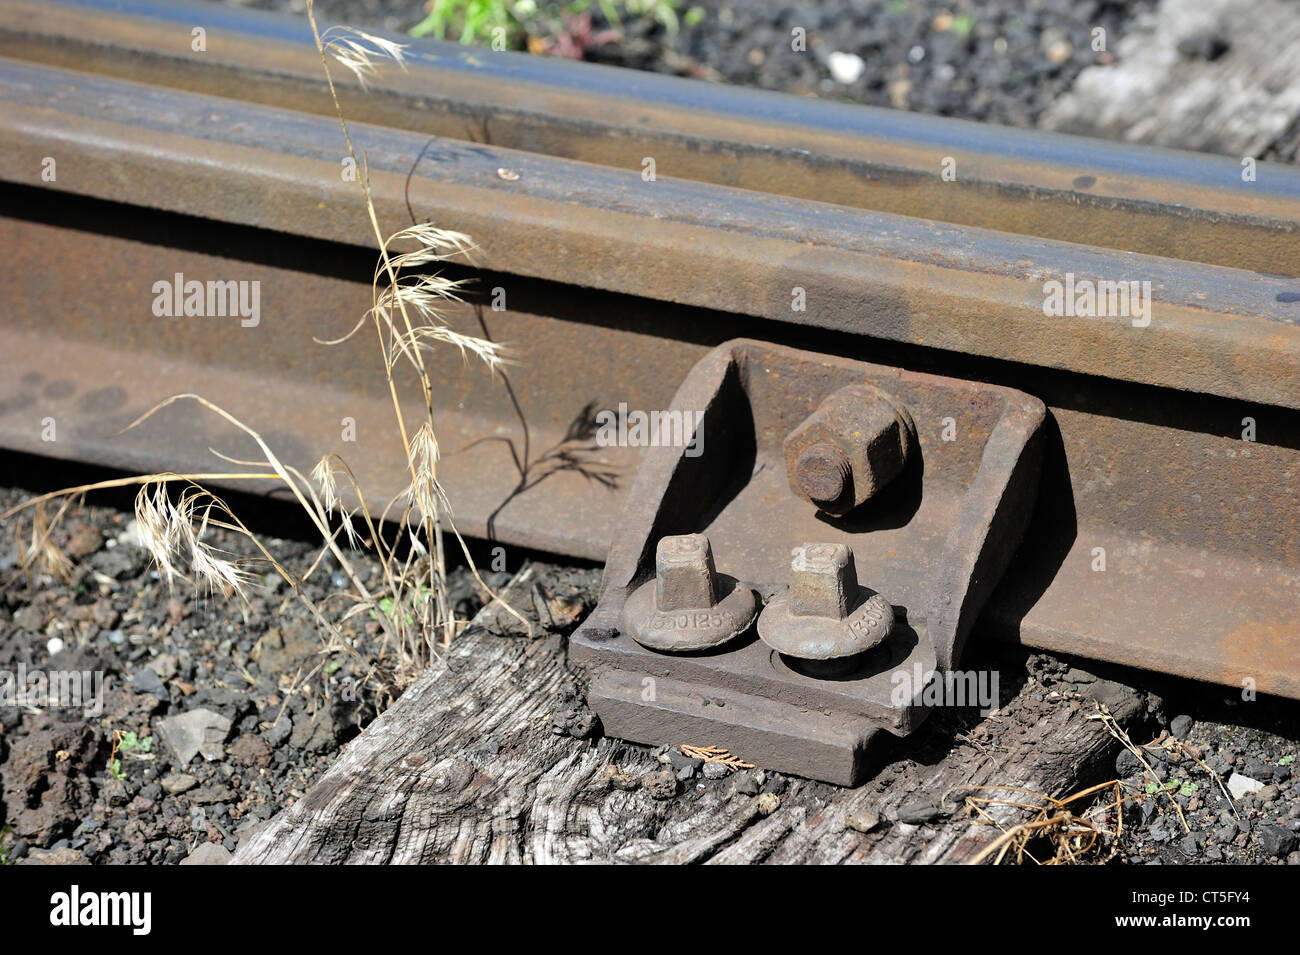 Railroad tracks on wooden sleepers at the depot of the Chemin de Fer à Vapeur des Trois Vallées at Mariembourg, - Stock Image